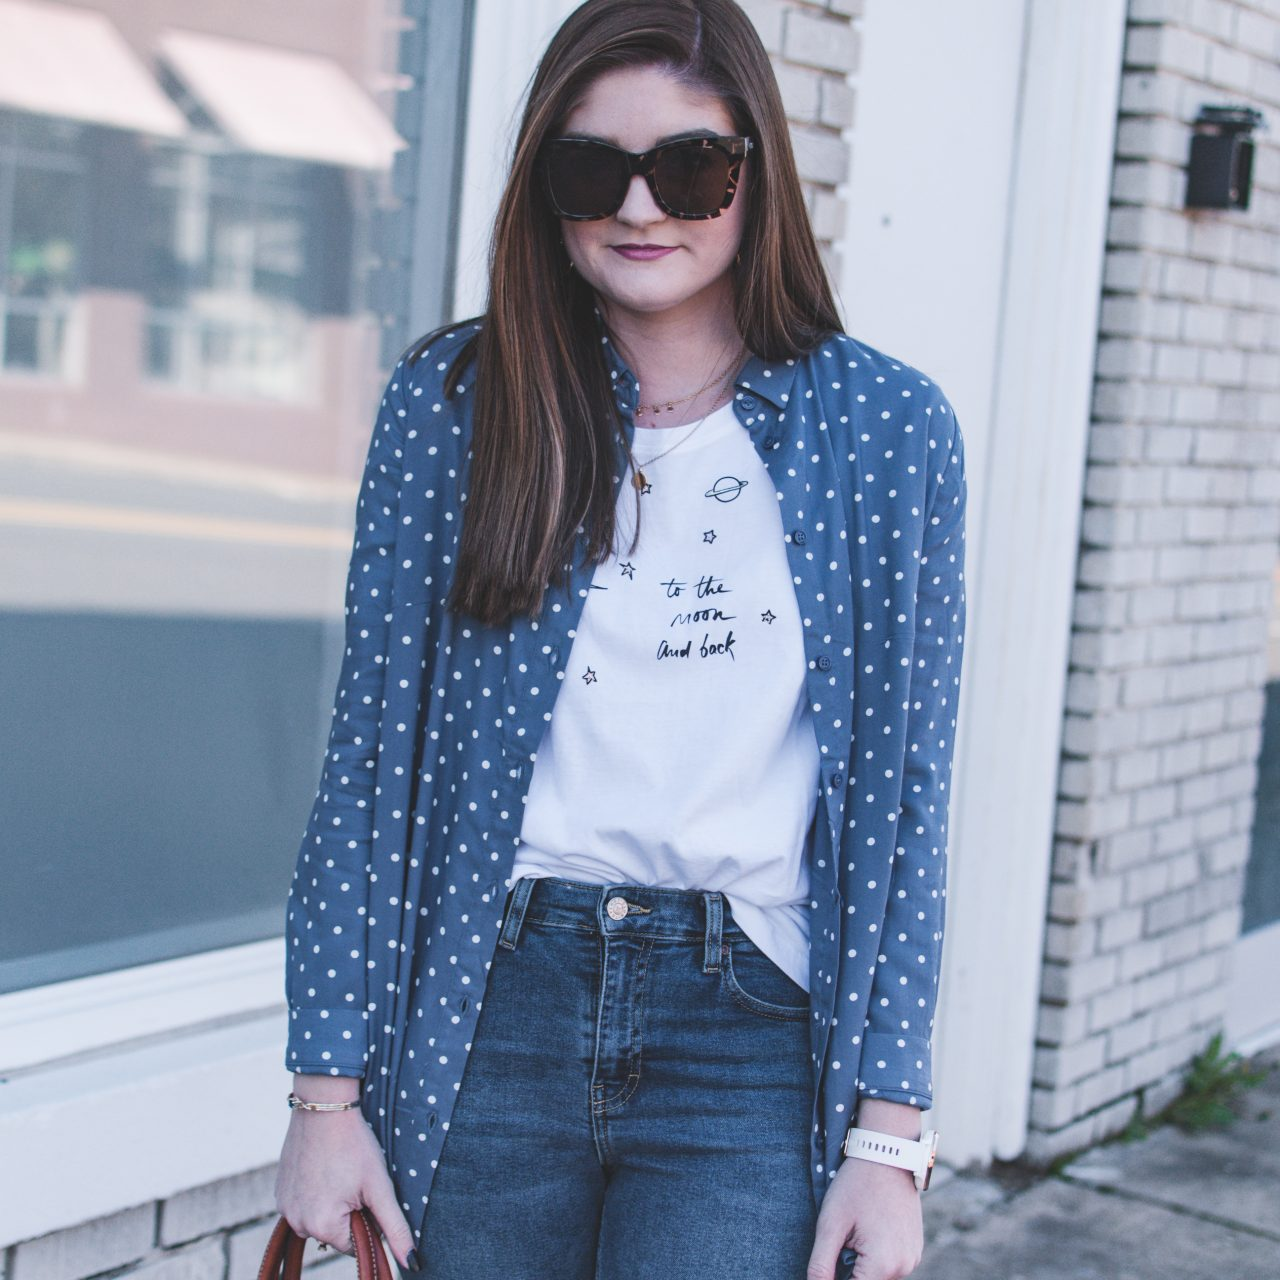 Graphic Tees: How to Style Them + Where to Buy Them